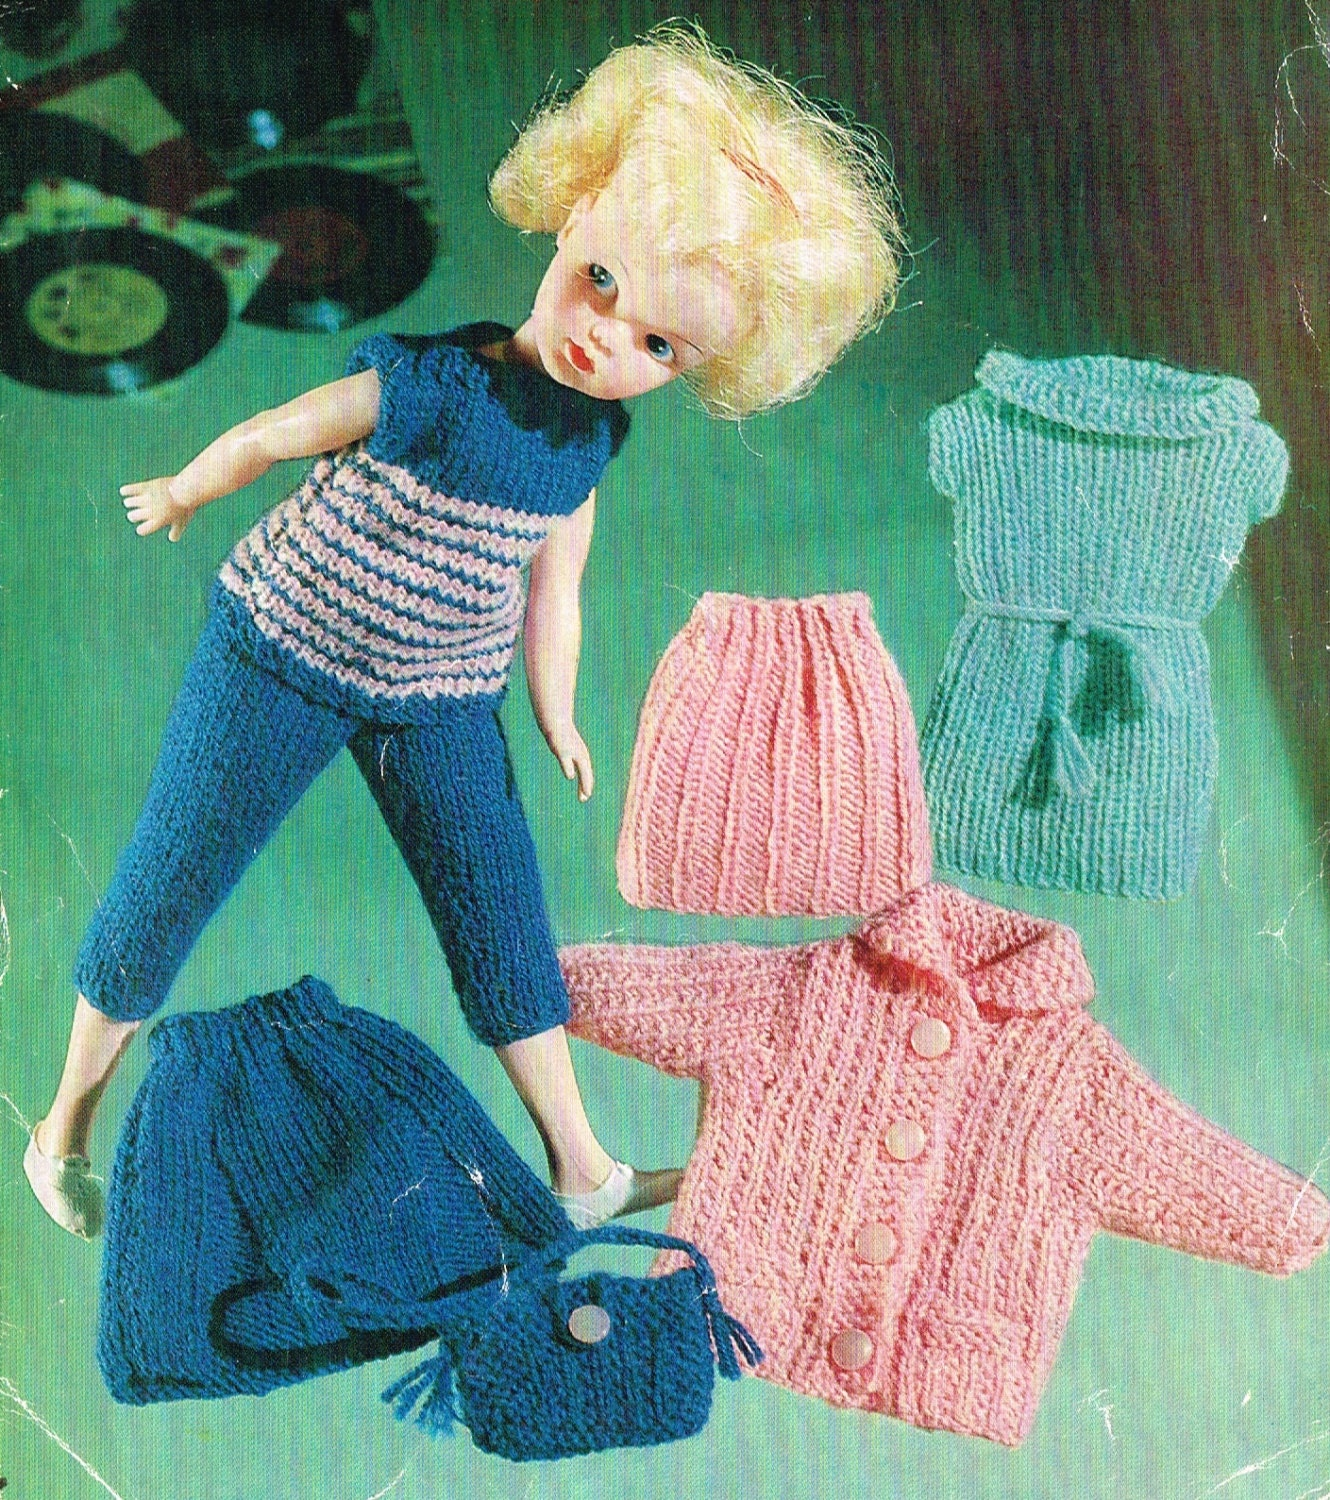 Knitting Clothes For Barbie Dolls : Dolls clothes knitting pattern barbie or sindy